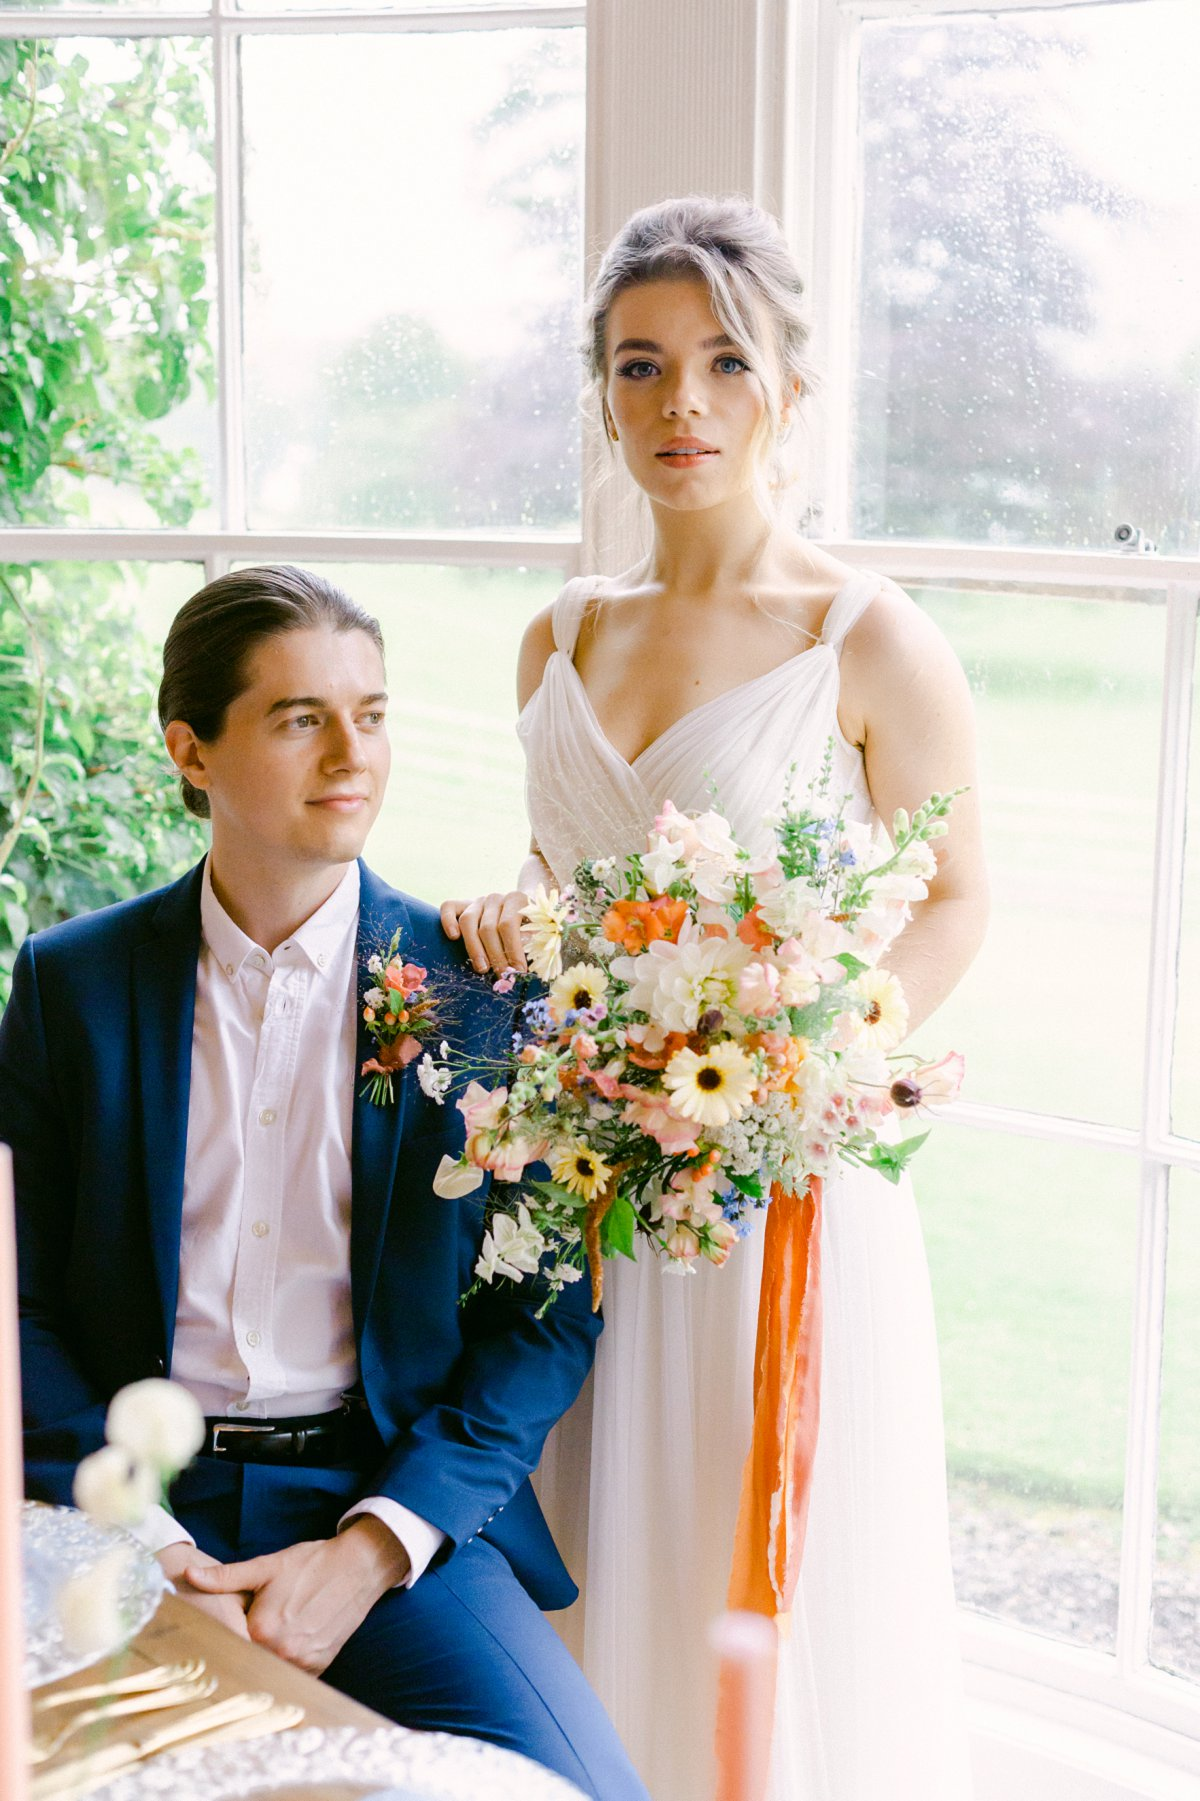 A Styled Wedding Shoot at Town Head Estate Windermere (c) Ailsa Reeve Photography (37)